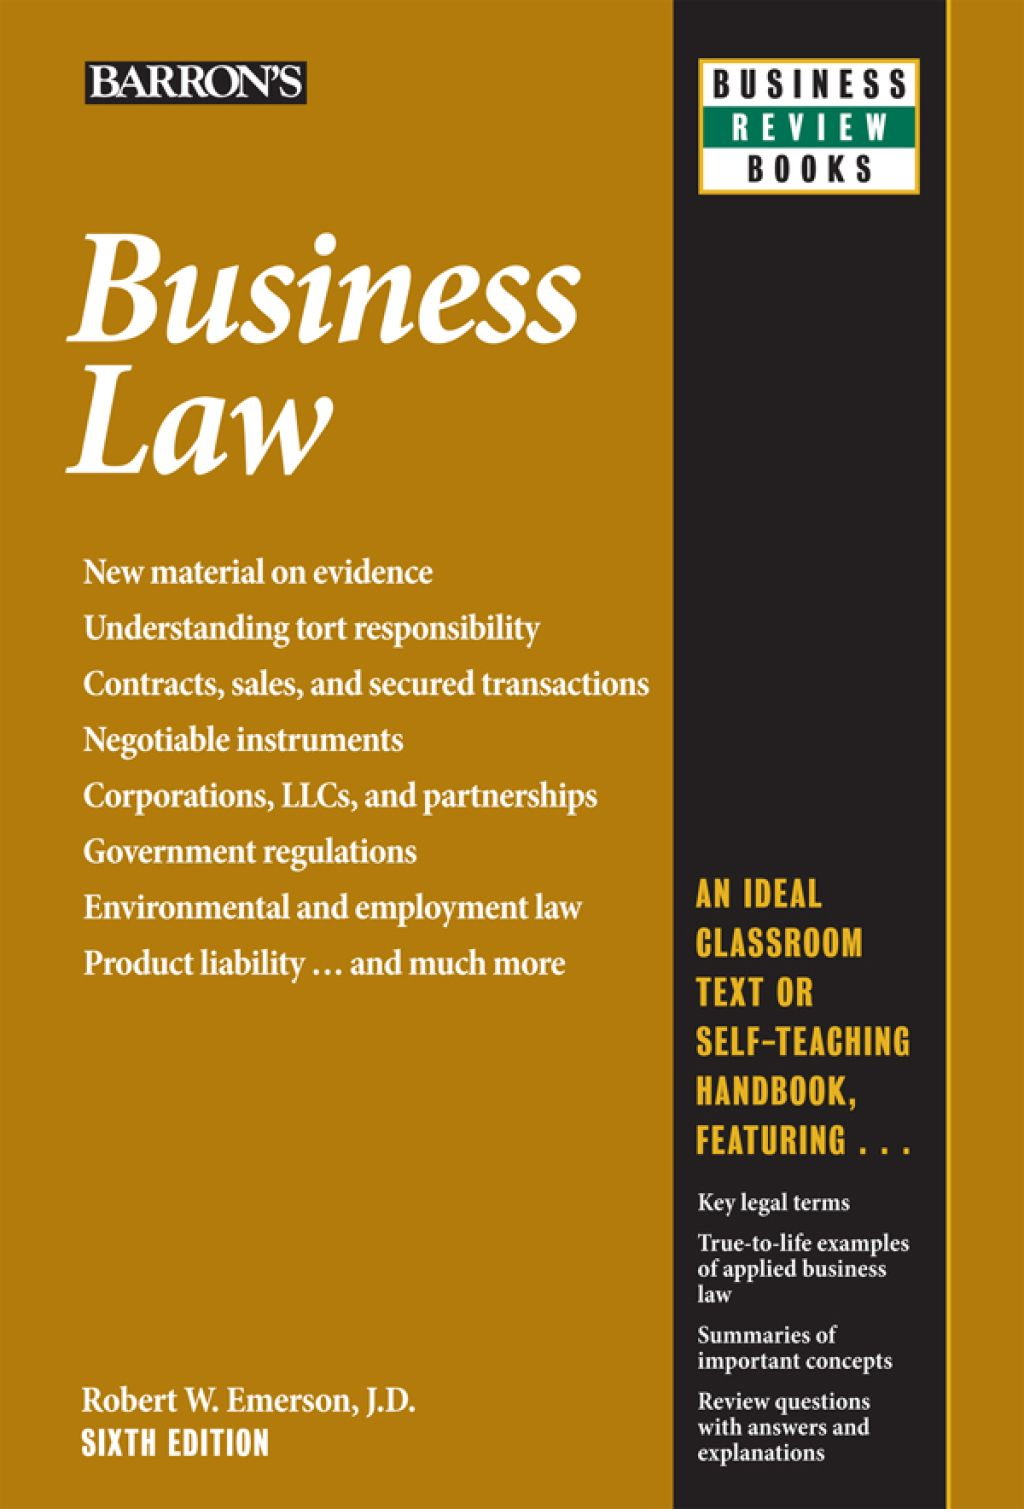 Business Law Ebook In 2019 Law Books Law Environmental Law